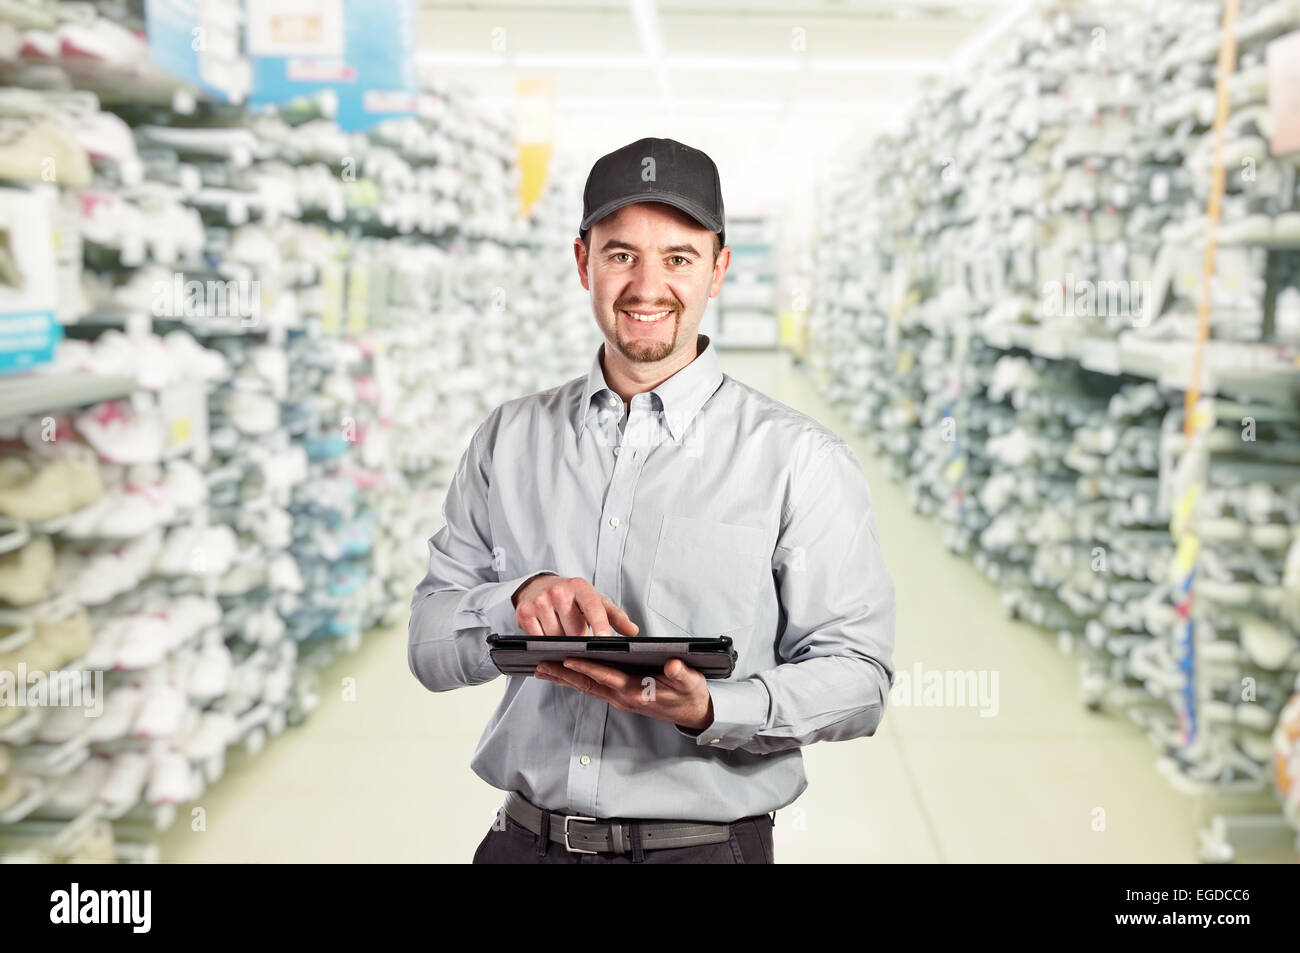 confident worker with tablet and warehouse background - Stock Image